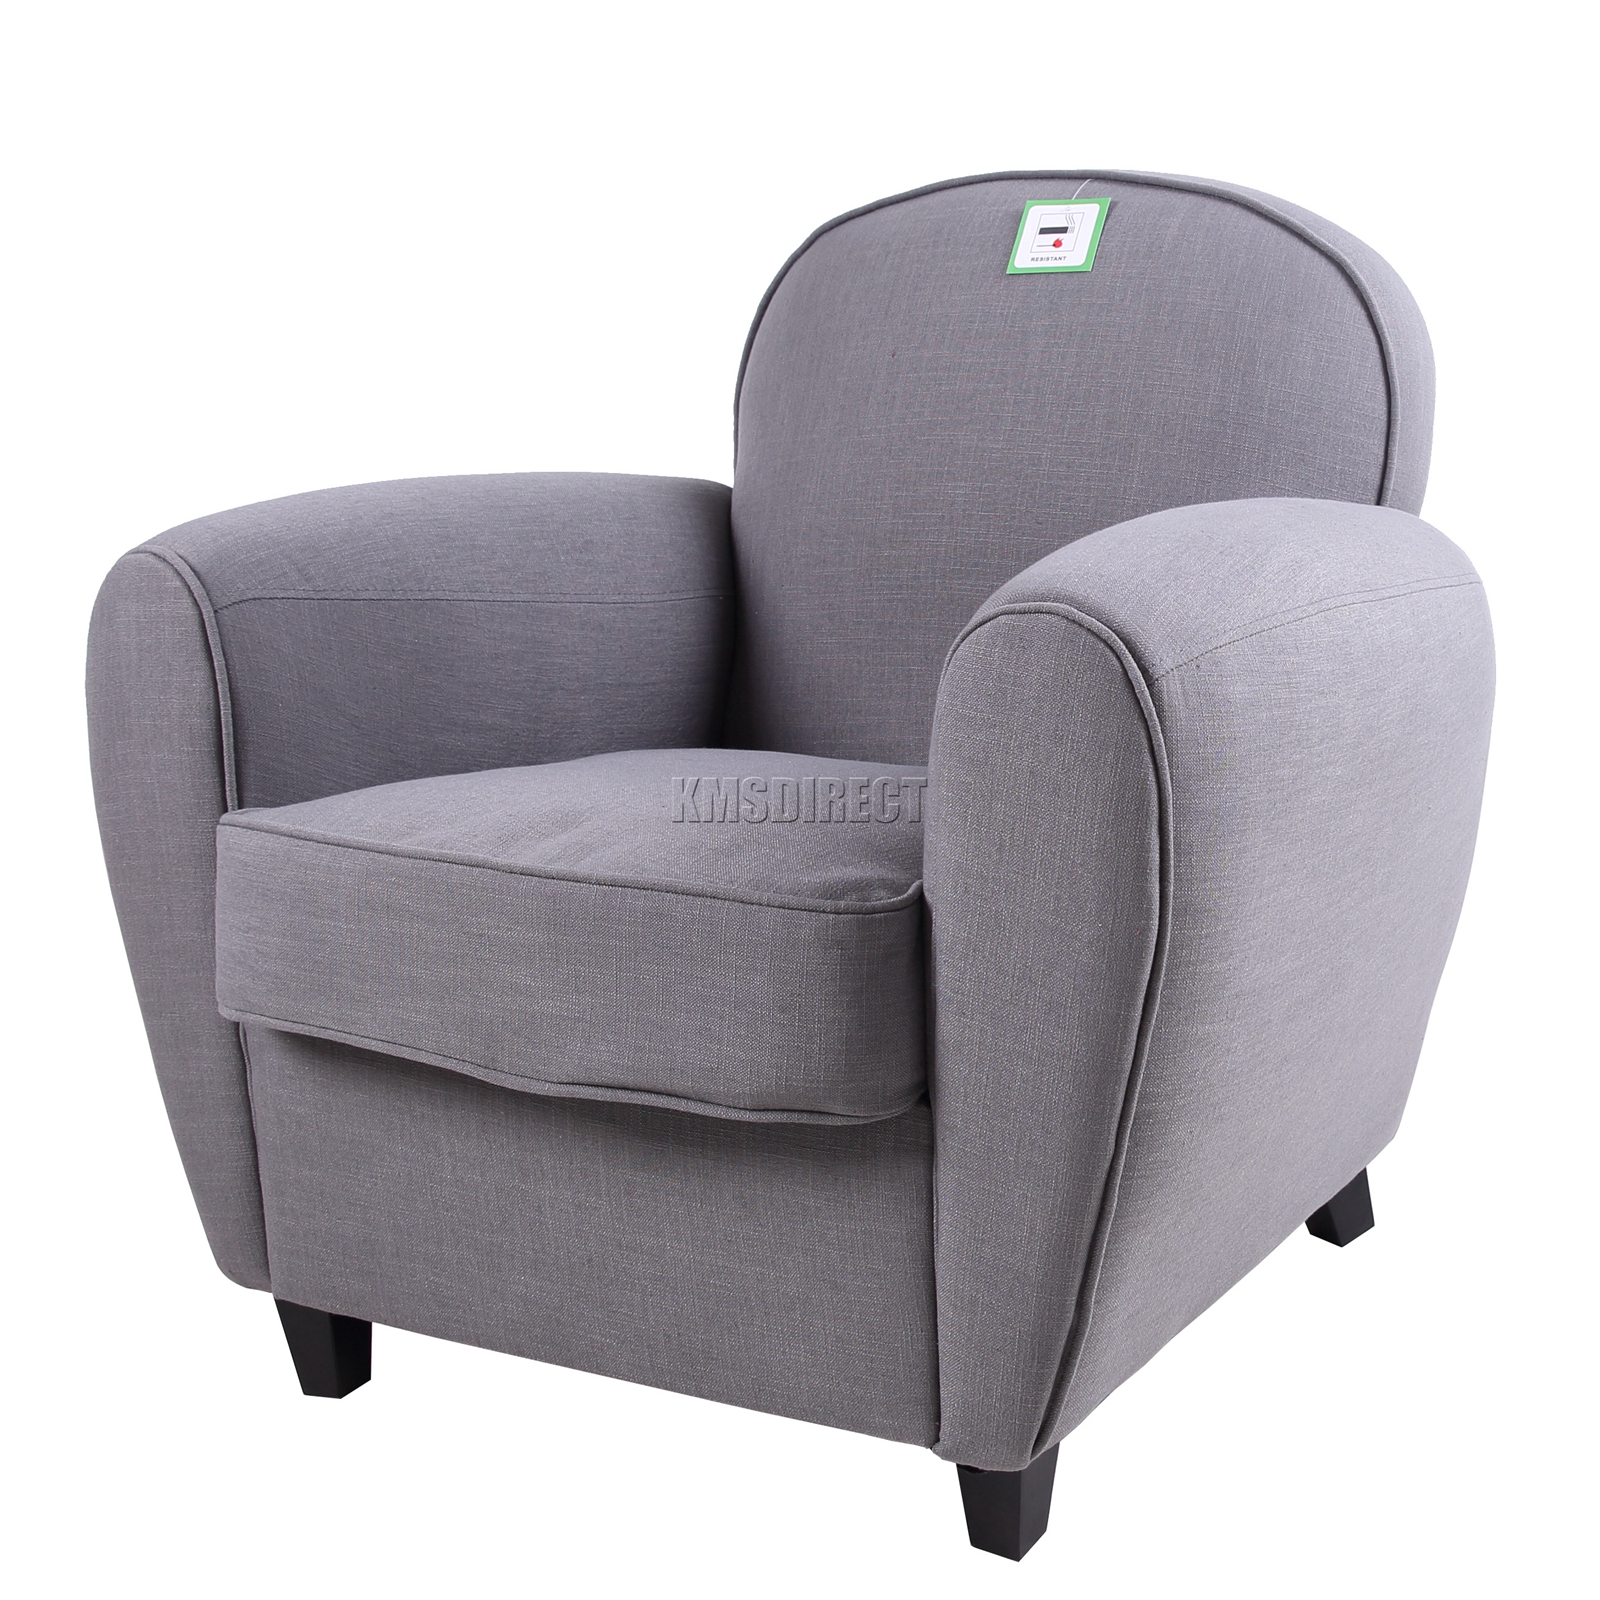 Fabric Tub Chair Armchair 2094 Sofa Dining Living Room Grey New | eBay